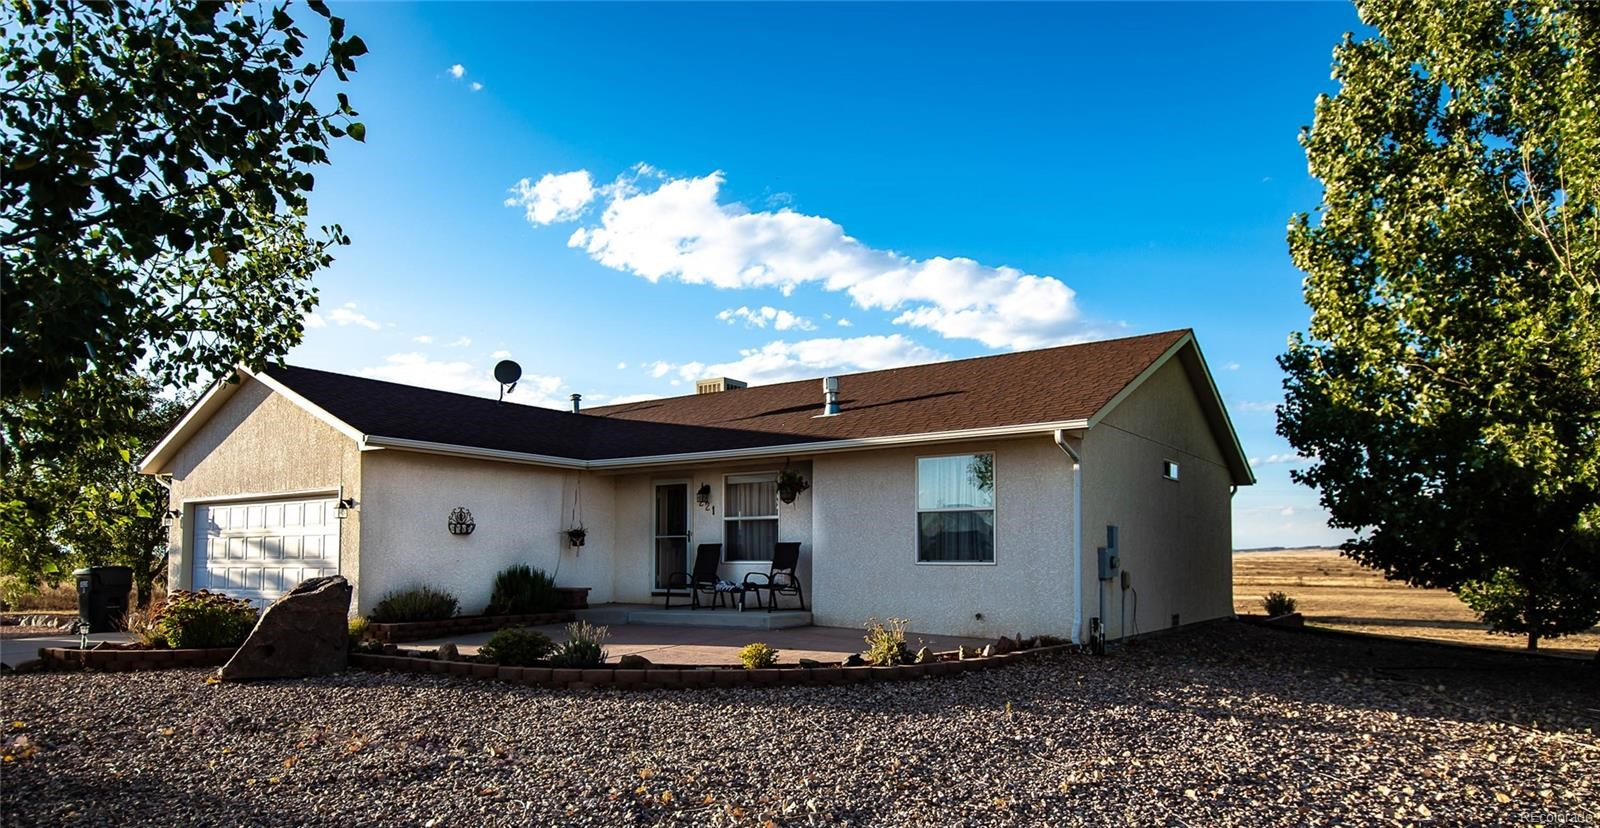 MLS# 2303742 - 4 - 221 W Bywood Drive, Pueblo West, CO 81007